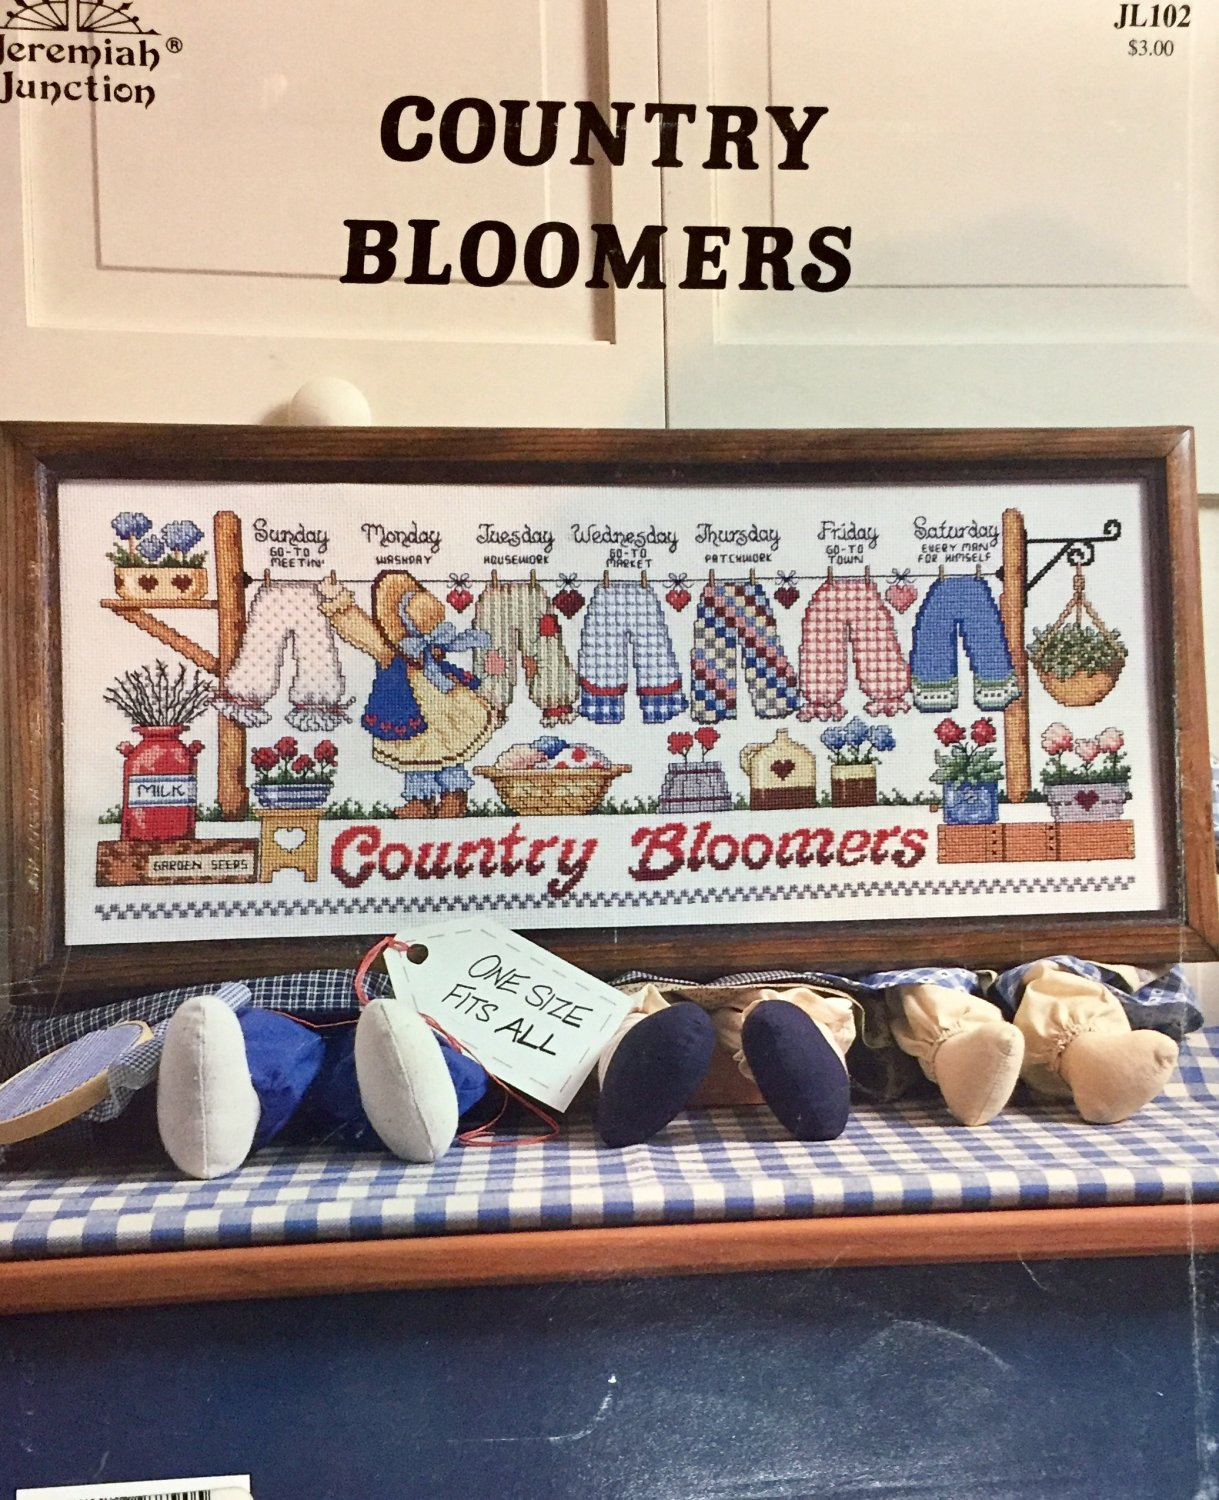 Country Bloomers Cross Stitch Chart Jeremiah Junction JL102 SOLD OUT